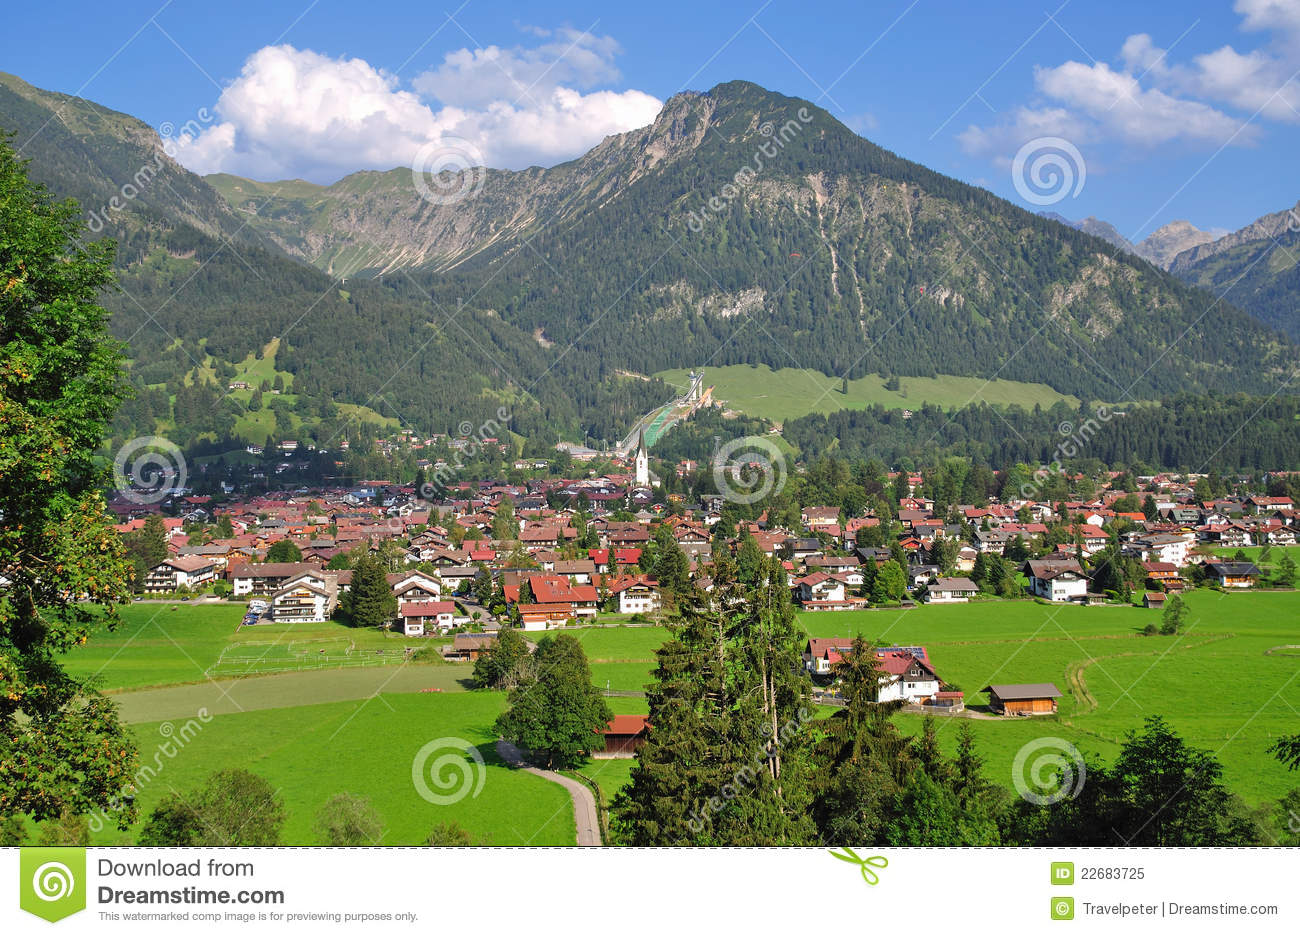 Oberstdorf,Allgaeu,Upper Bavaria,Germany Stock Image.